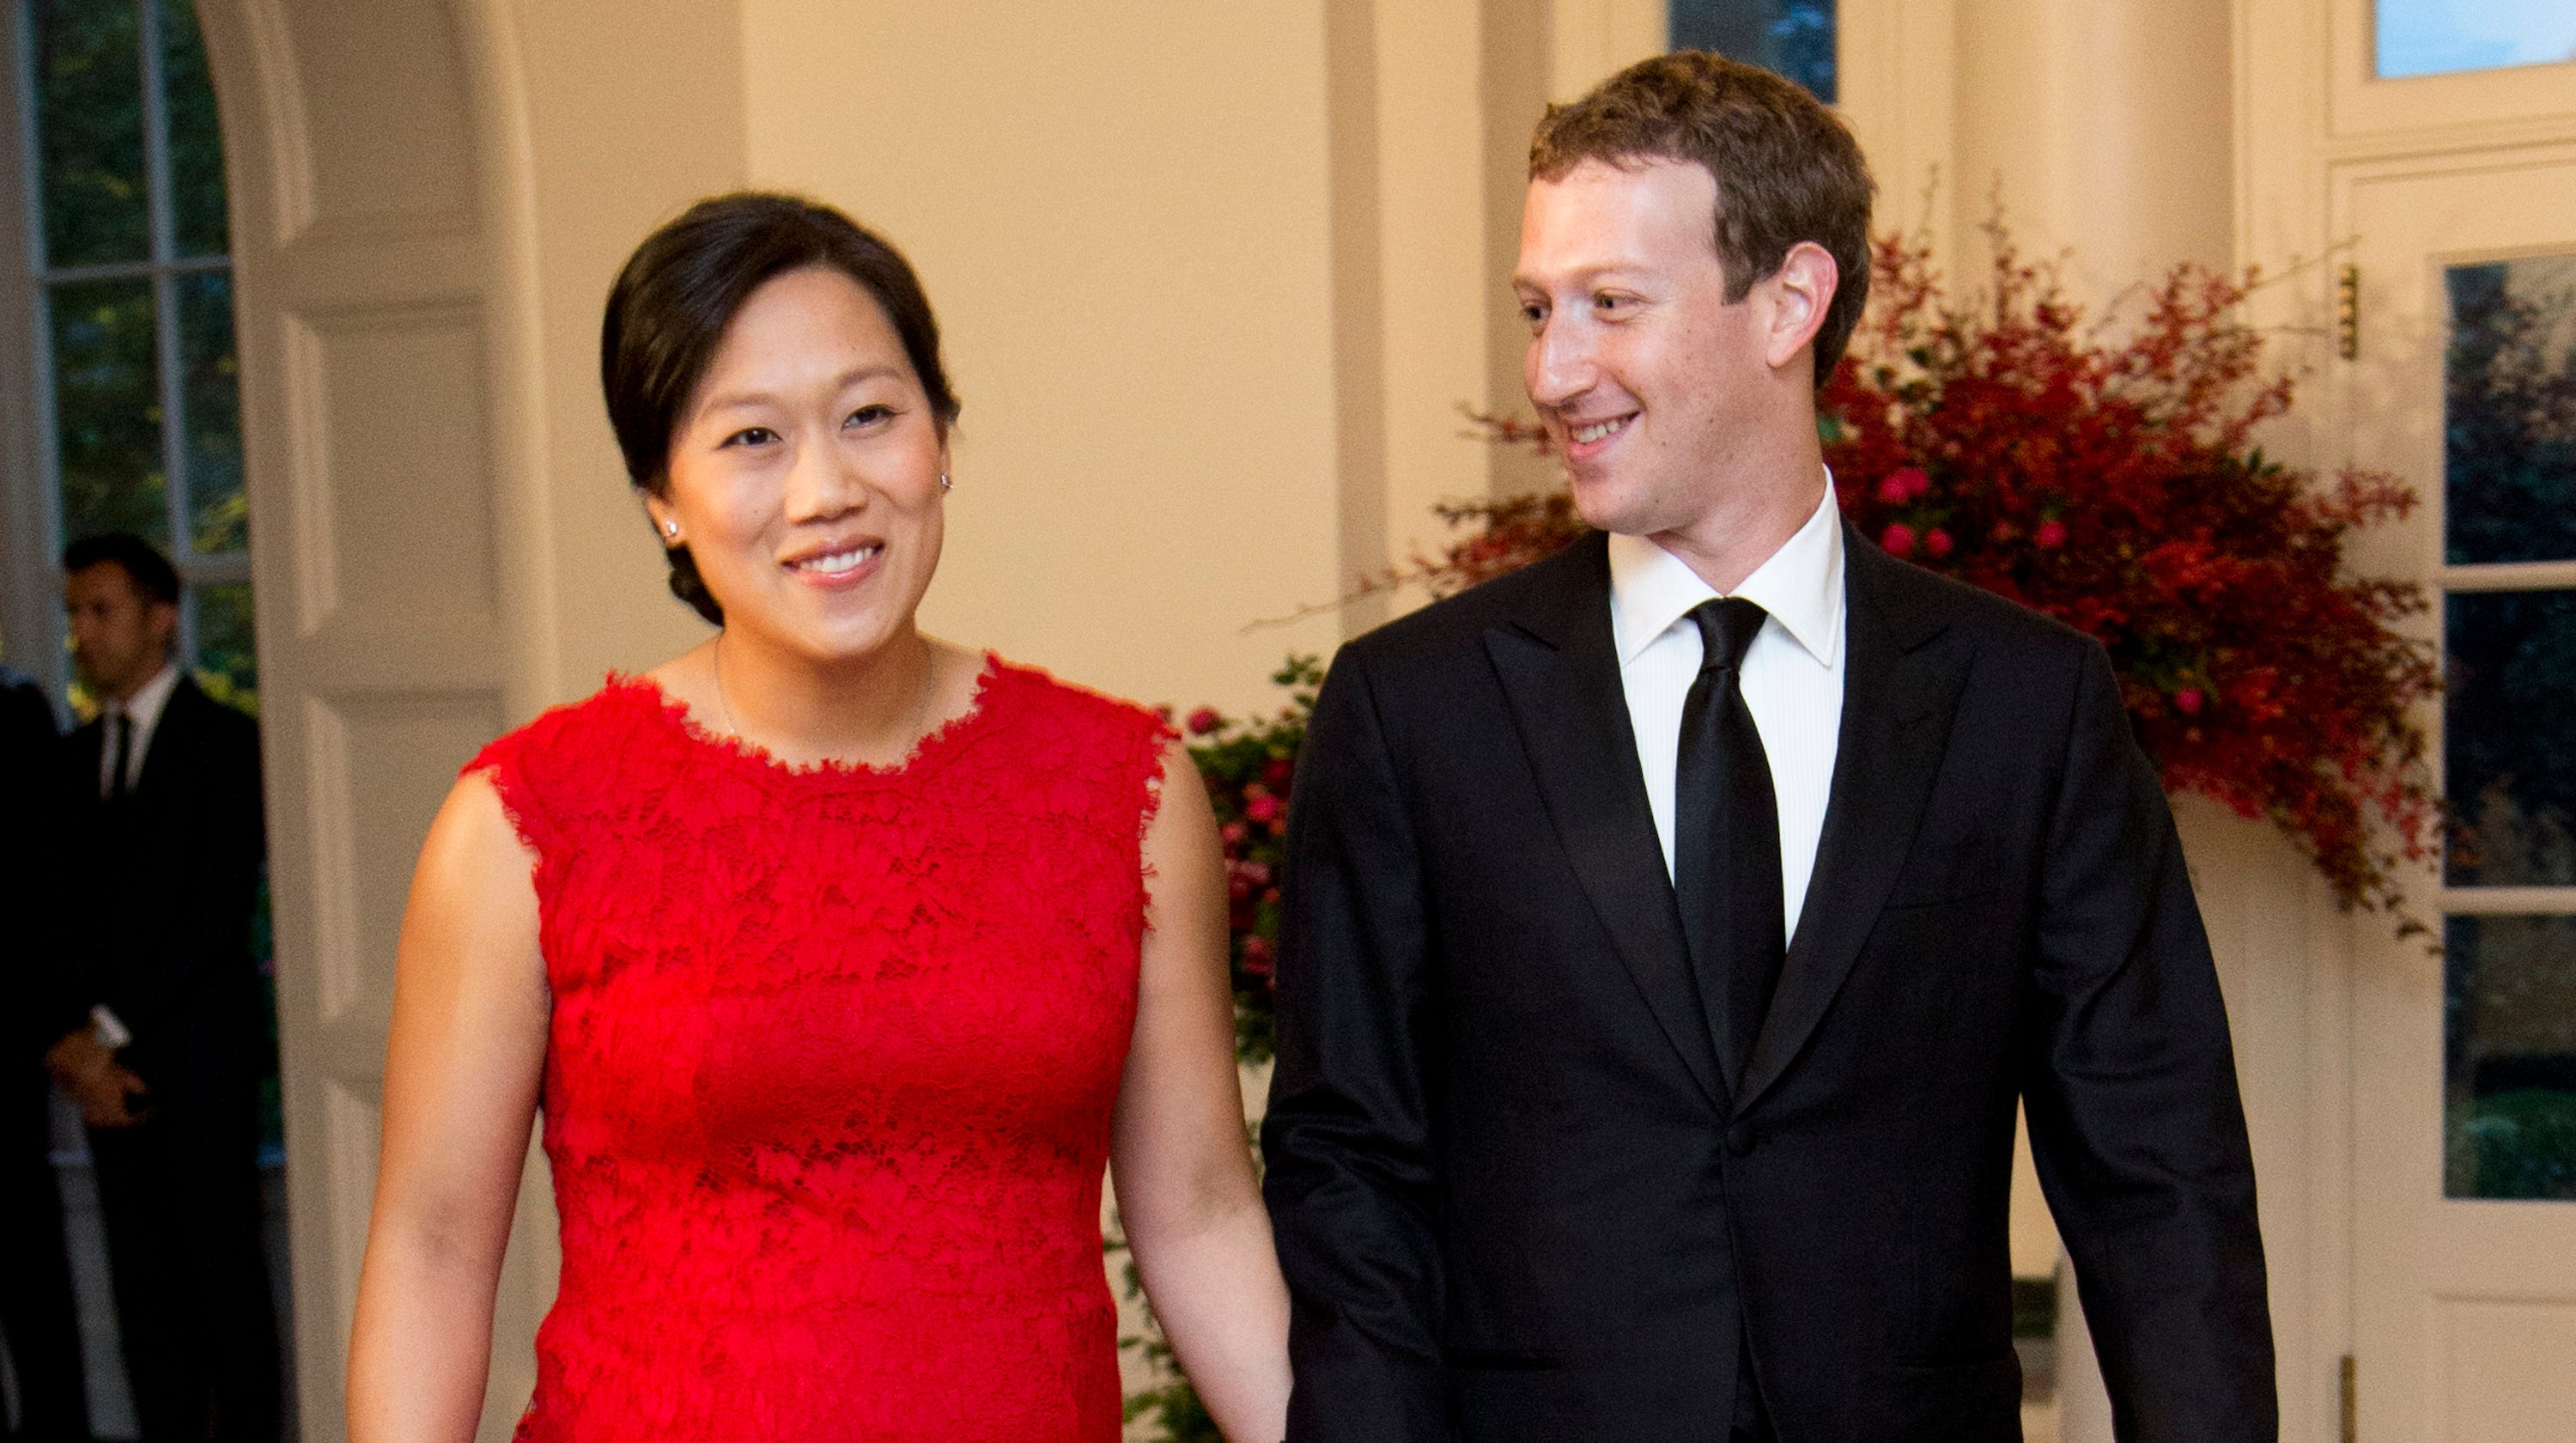 Mark Zuckerberg invents 'sleep box' to help his wife rest because 'being a mom is hard'